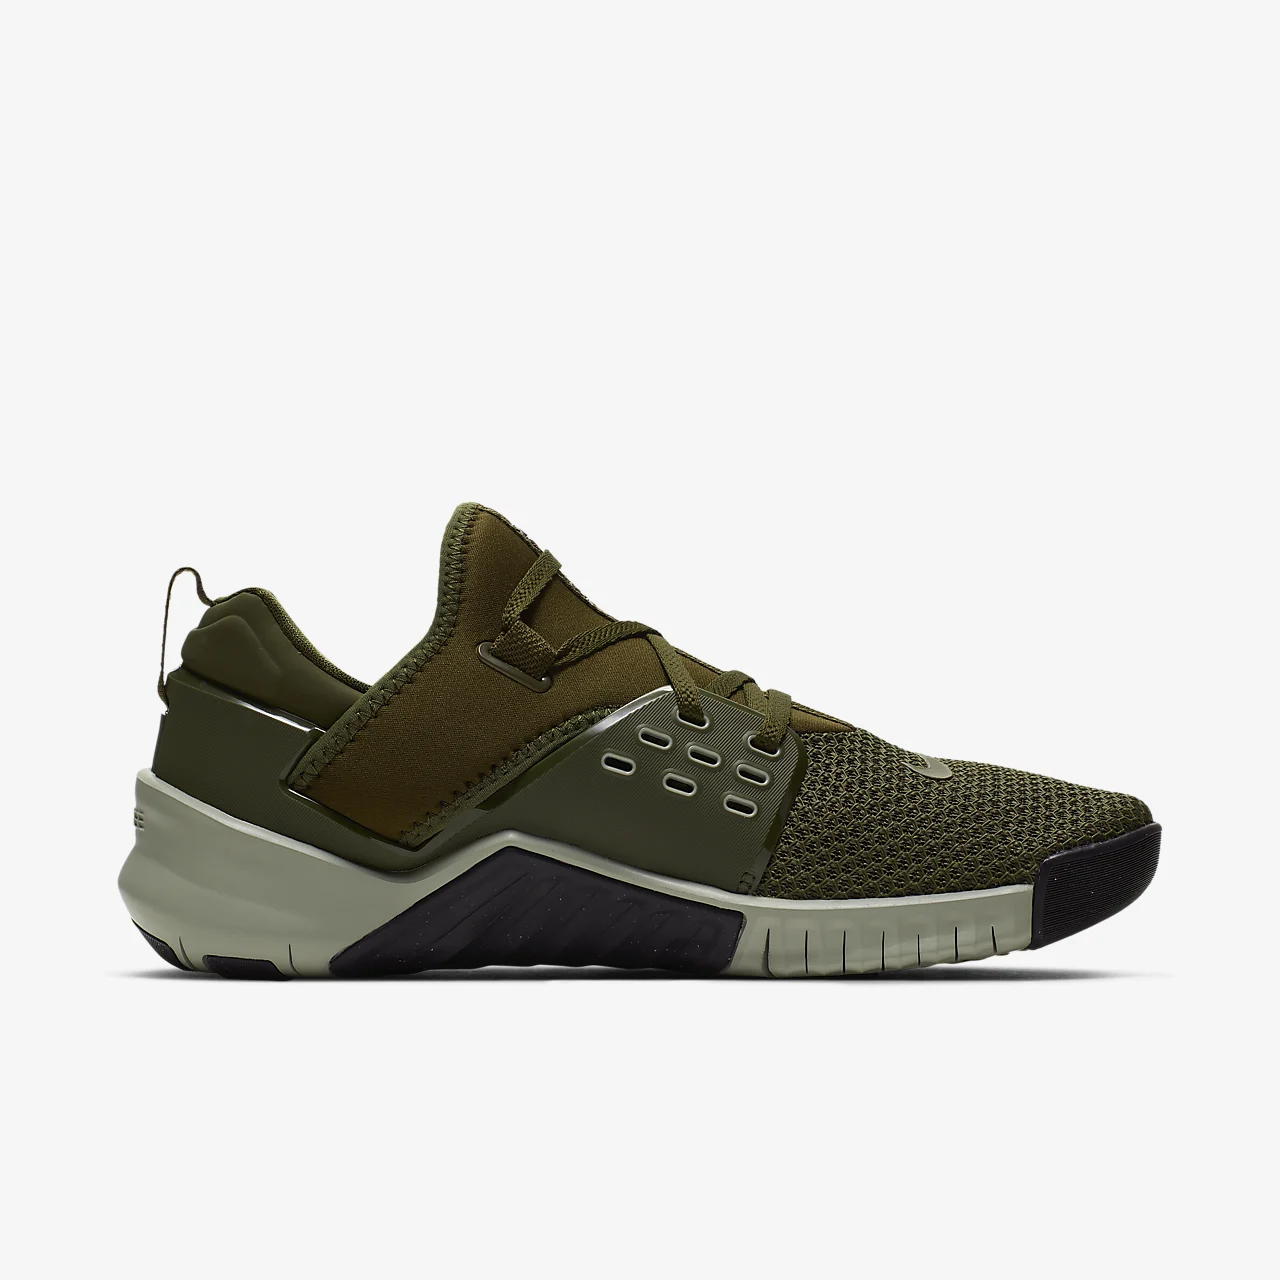 유럽직배송 나이키 NIKE Nike Free X Metcon 2 Men's Training Shoe AQ8306-303